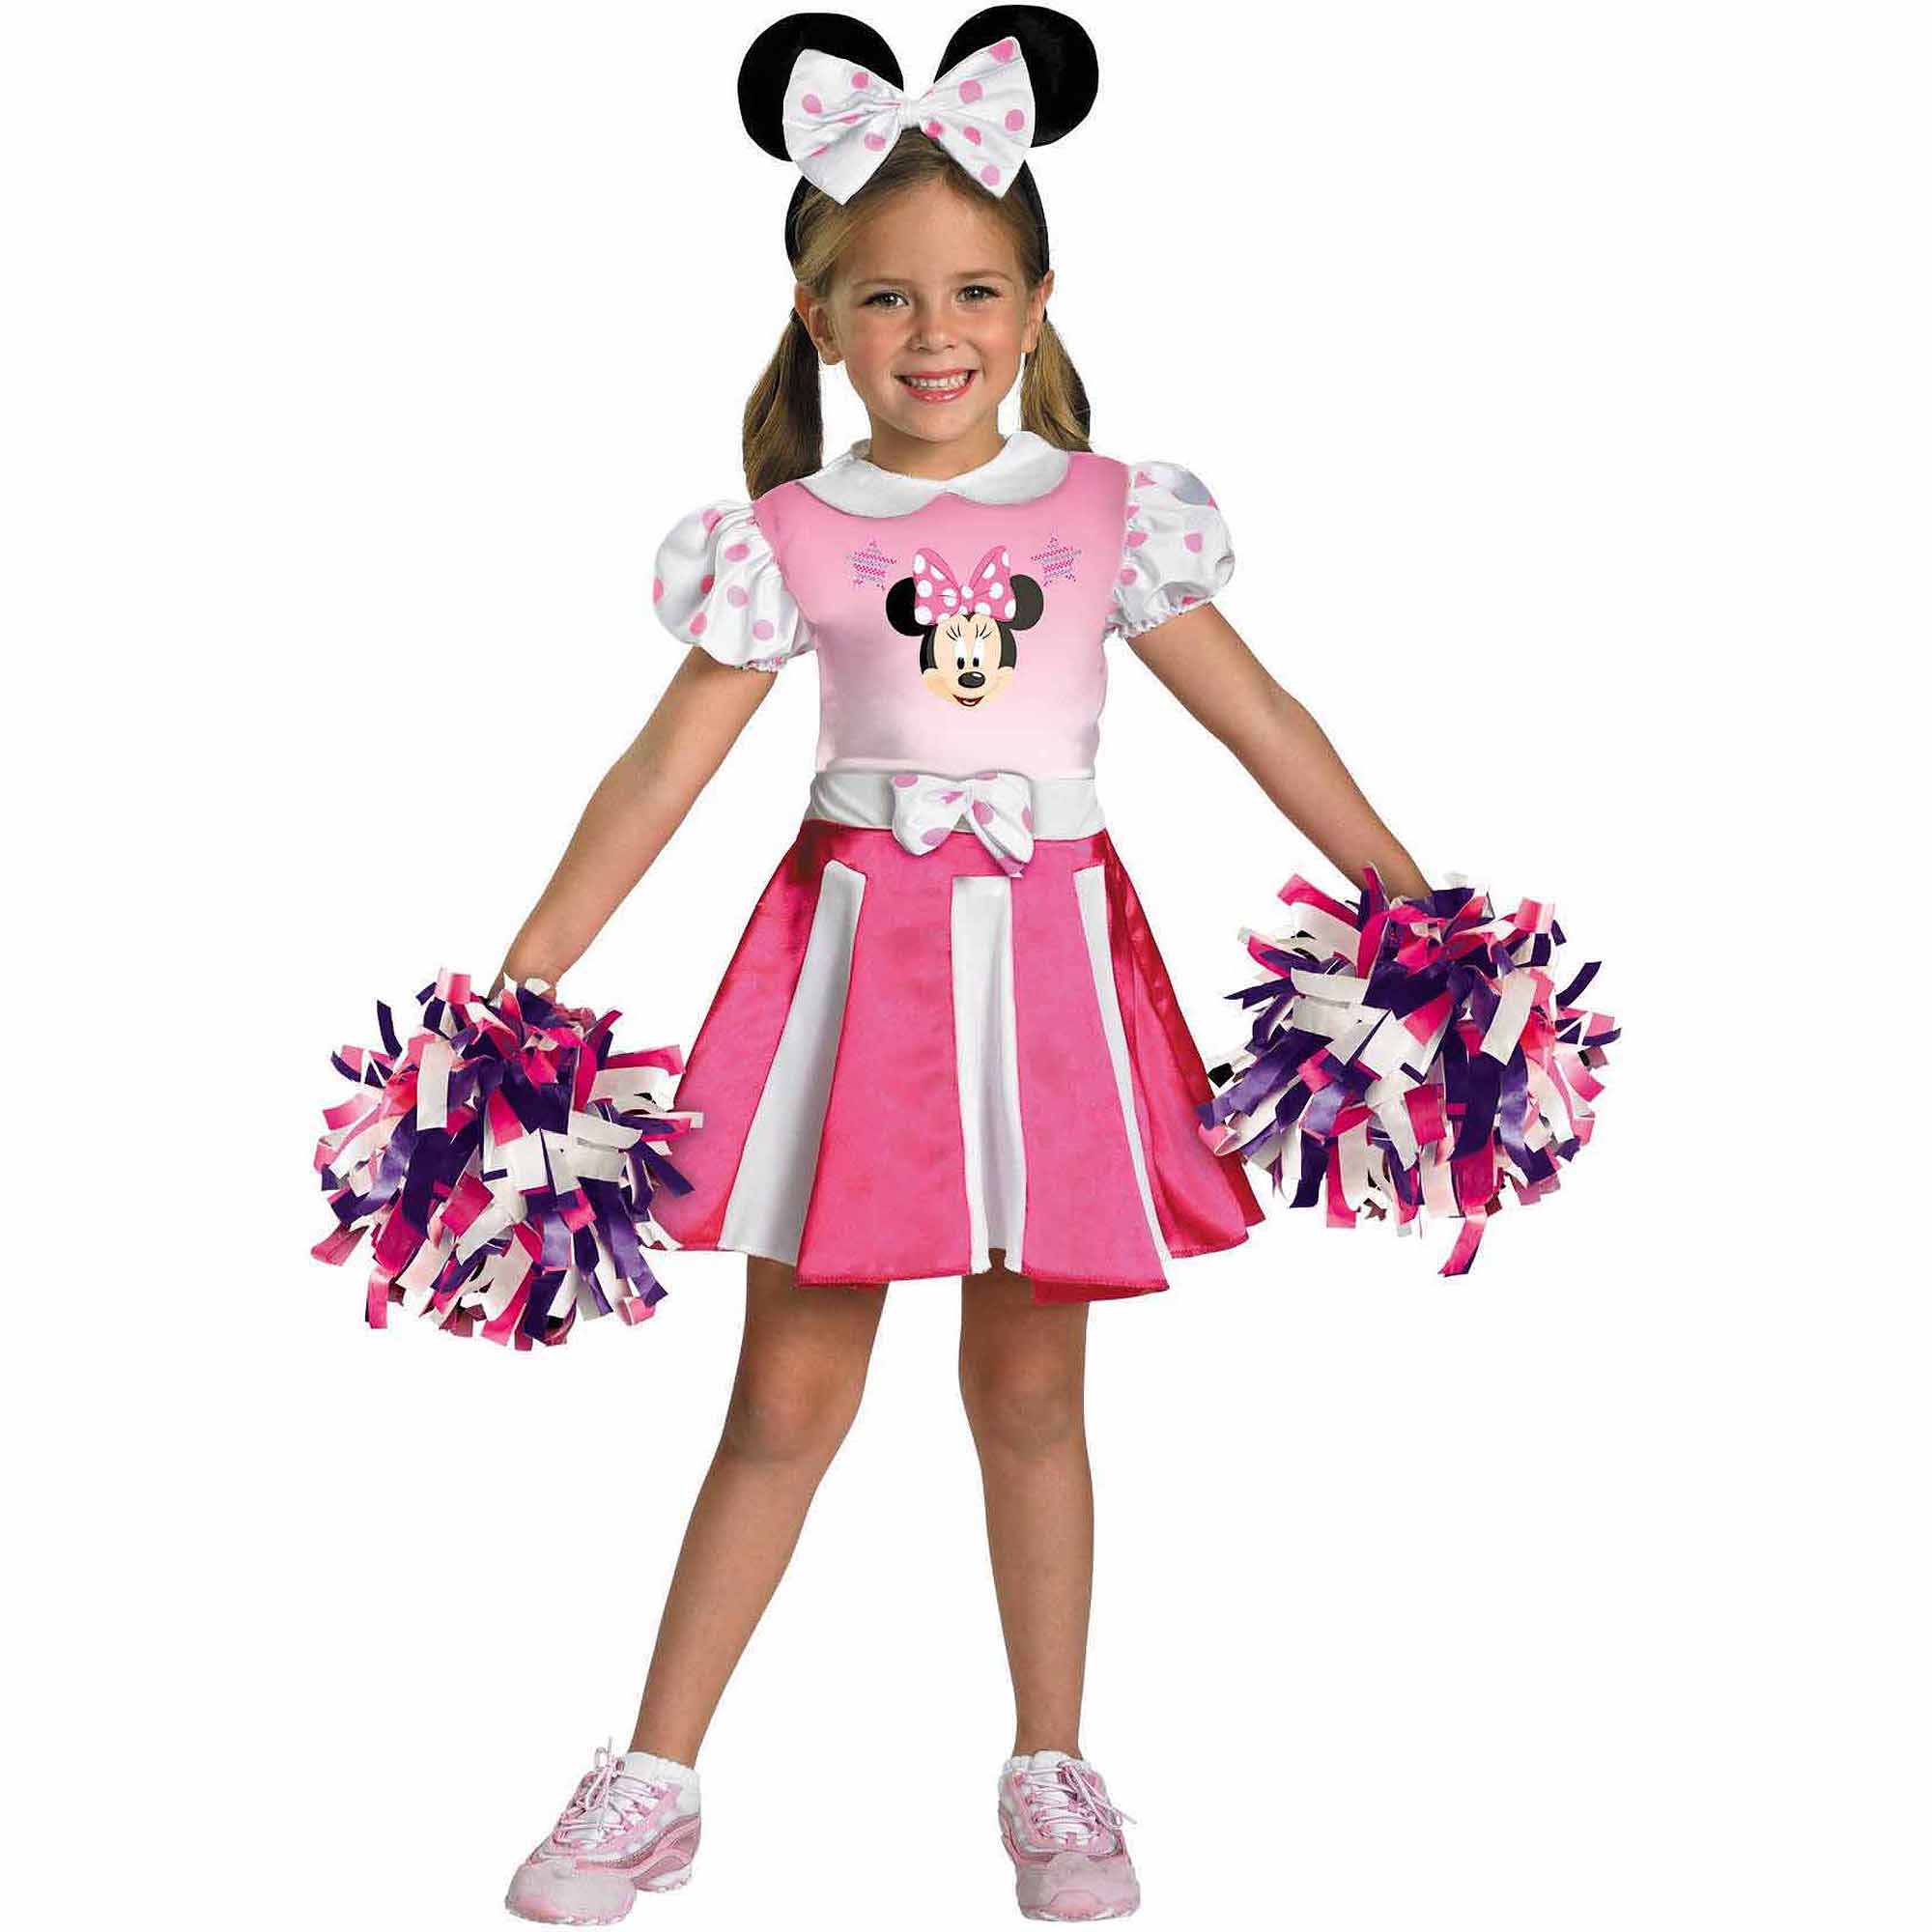 Mickey Mouse Clubhouse Minnie Mouse Cheerleader Toddler Halloween Costume